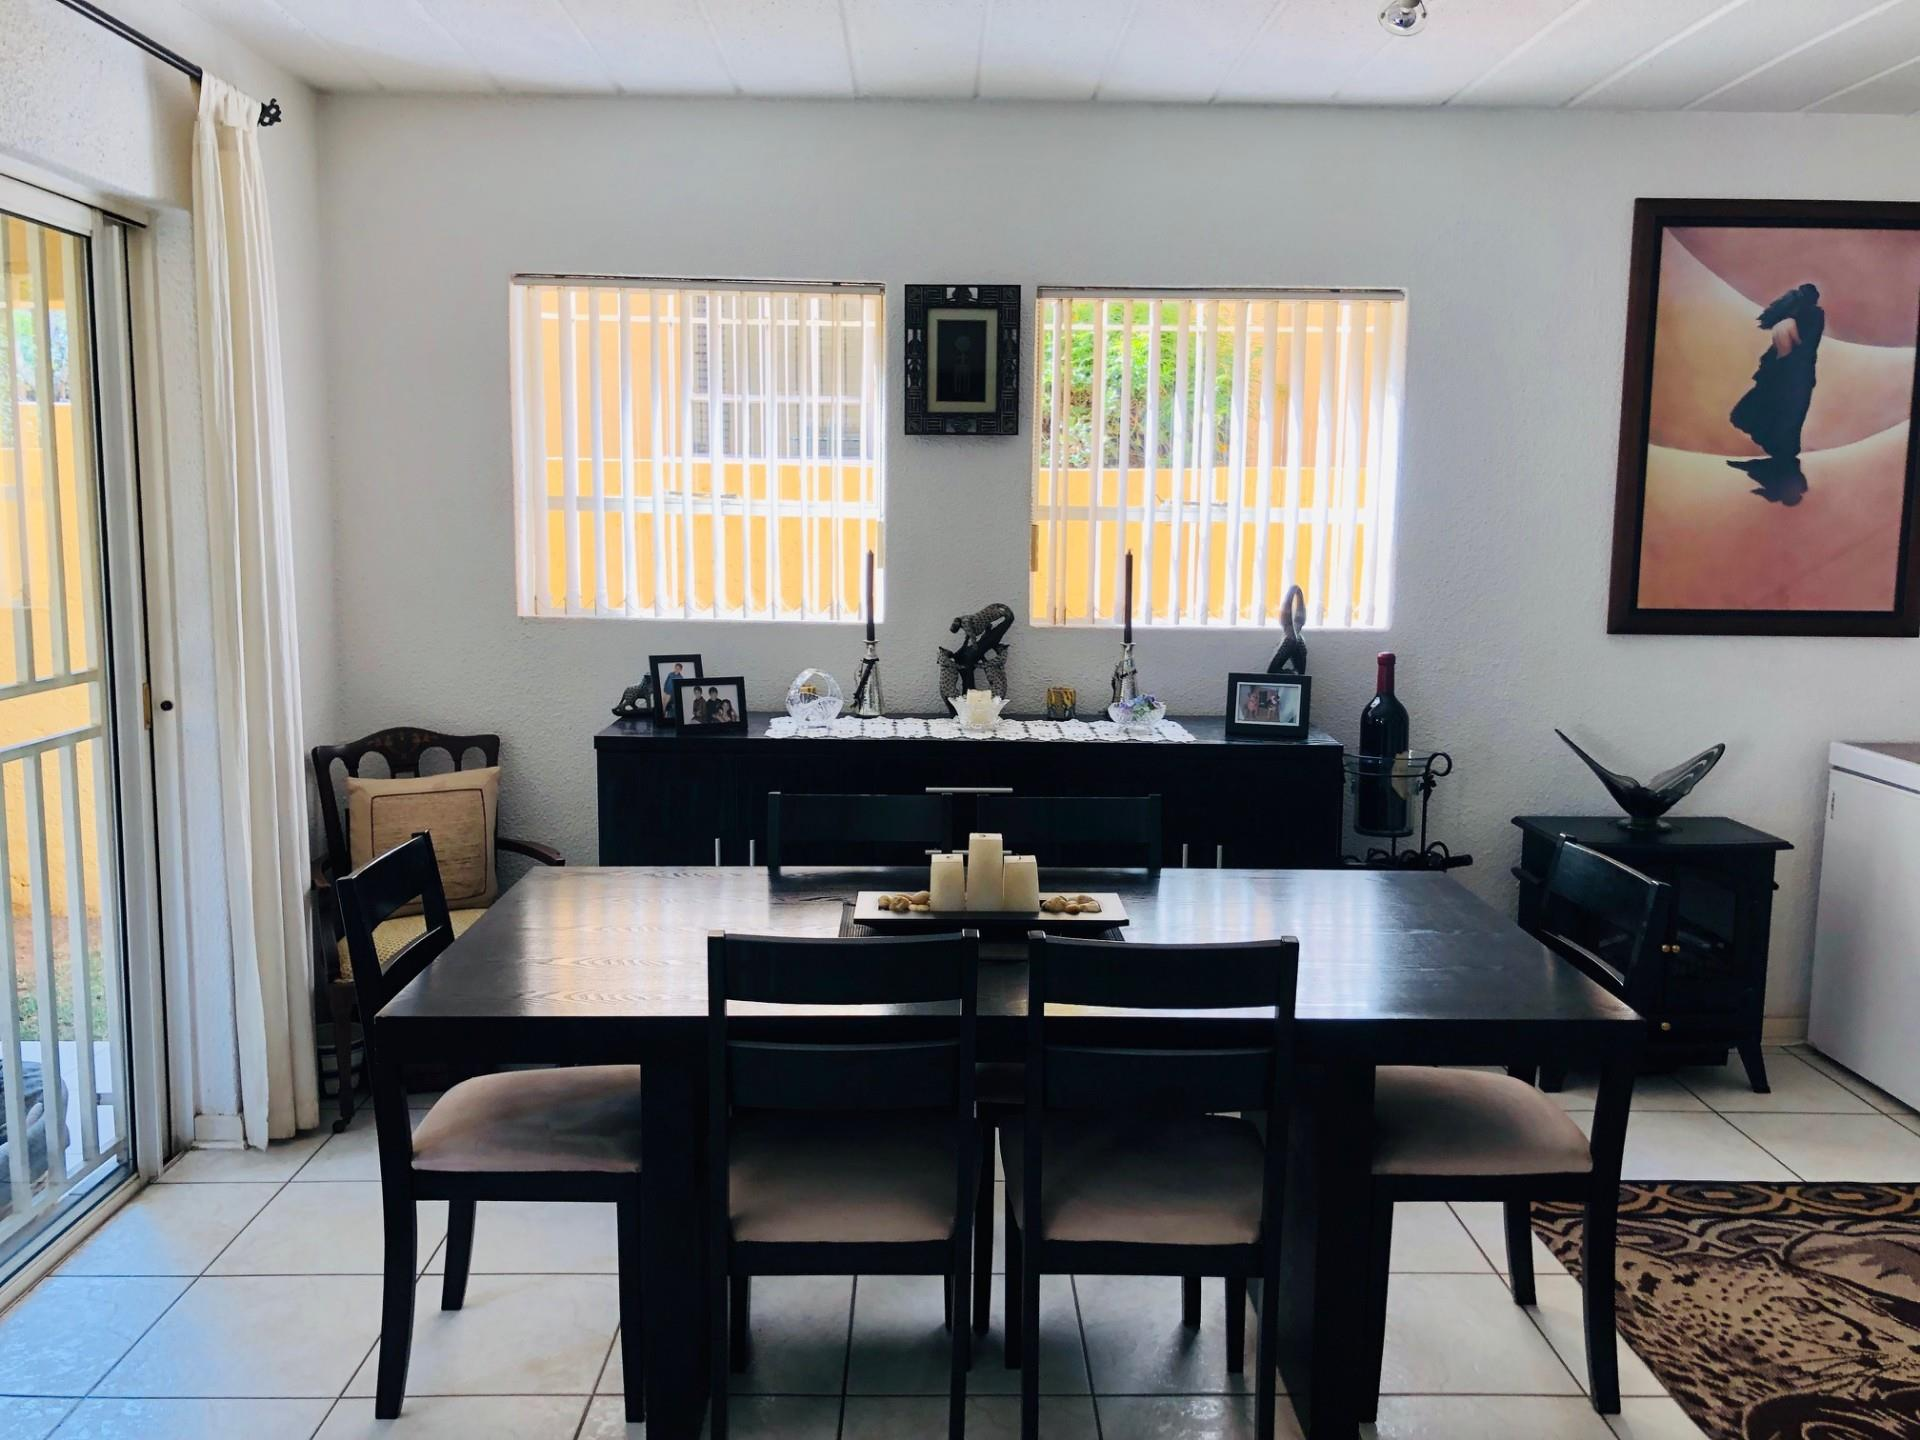 2 Bedroom House For Sale in Eden Glen